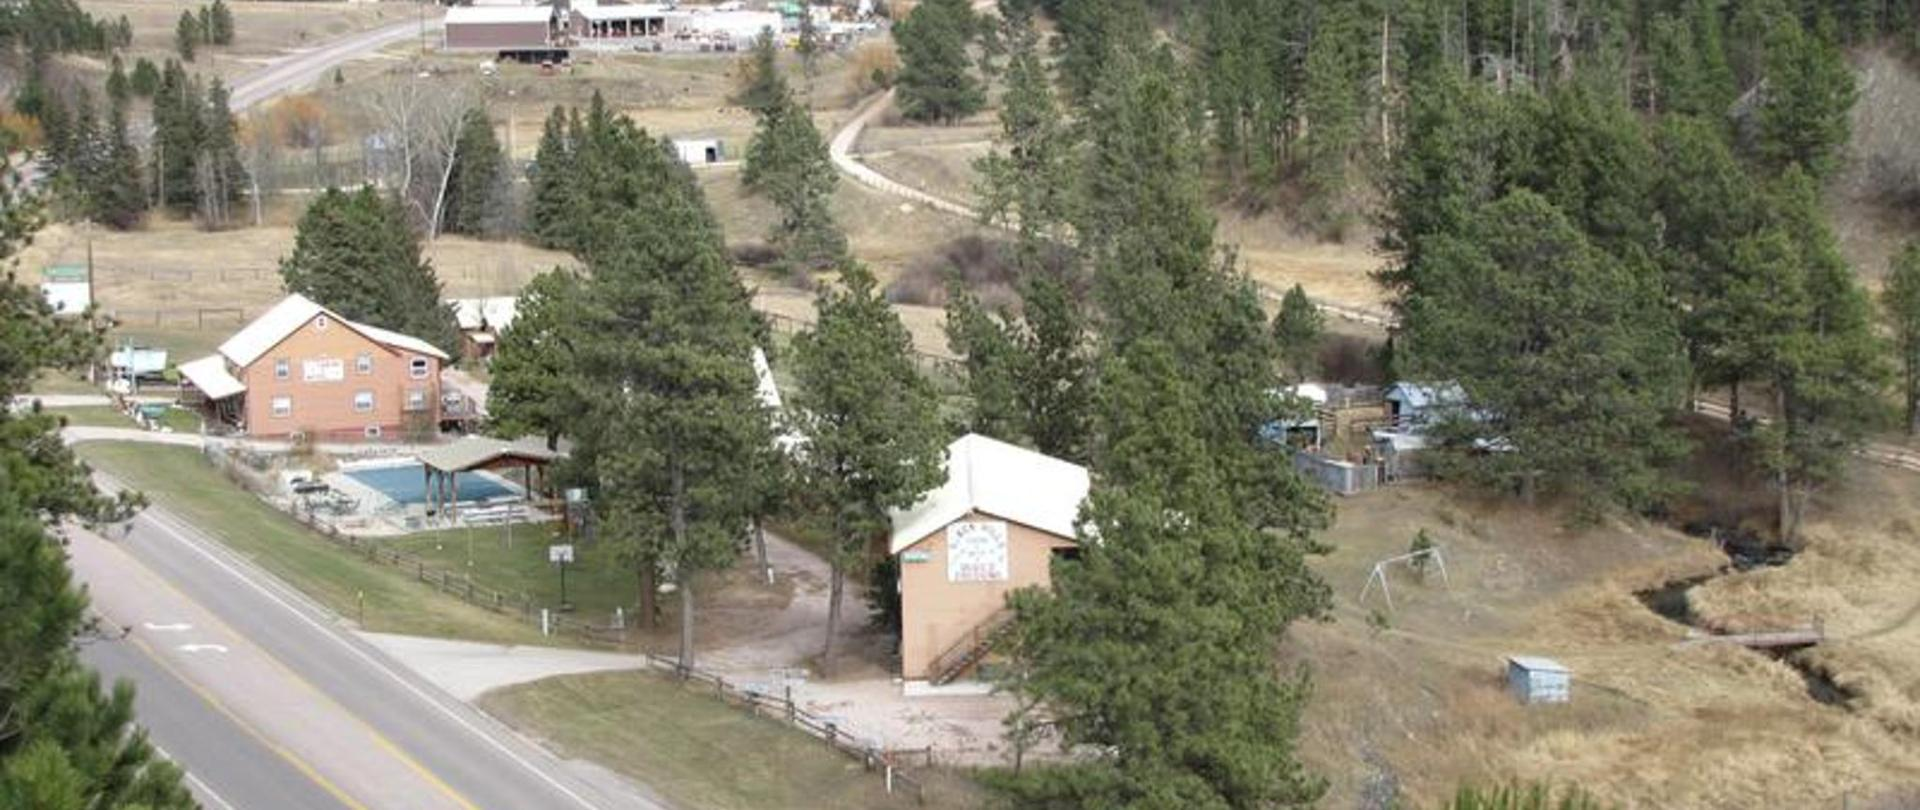 Black Hills Cabins & Motel at Quail's Crossing